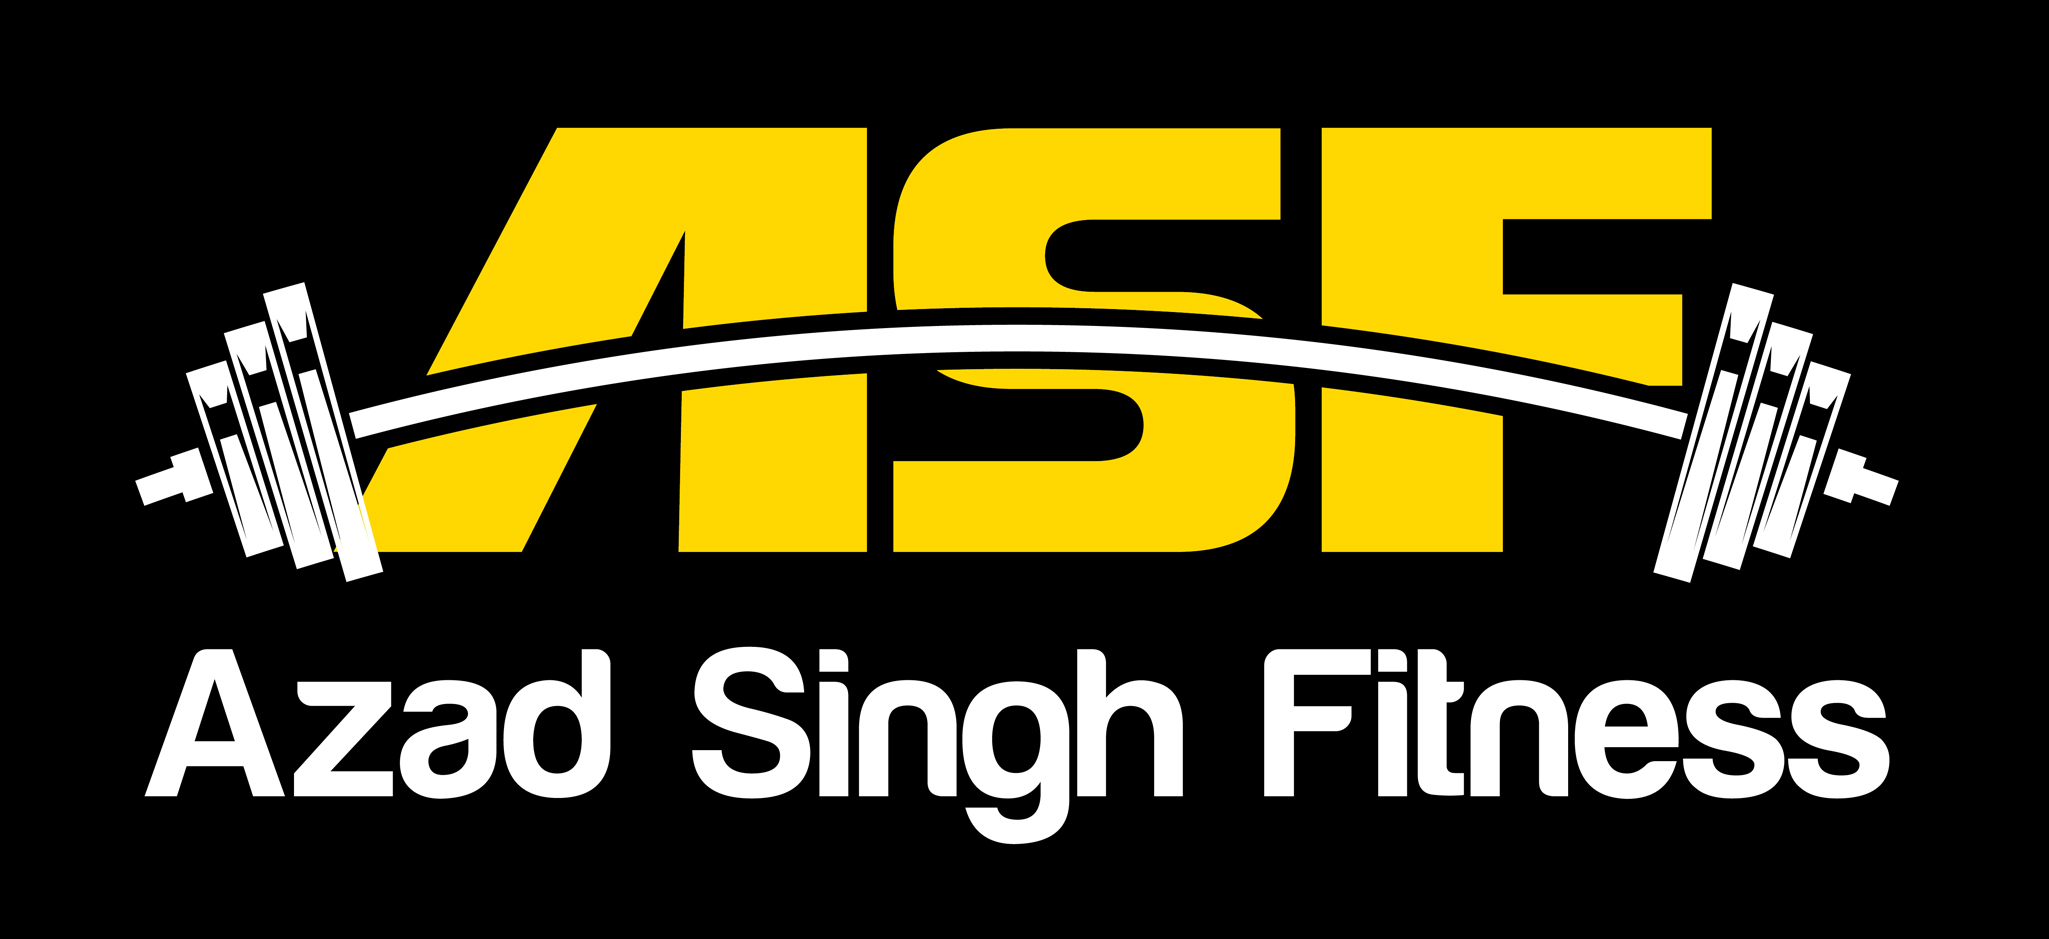 Azad Singh Fitness